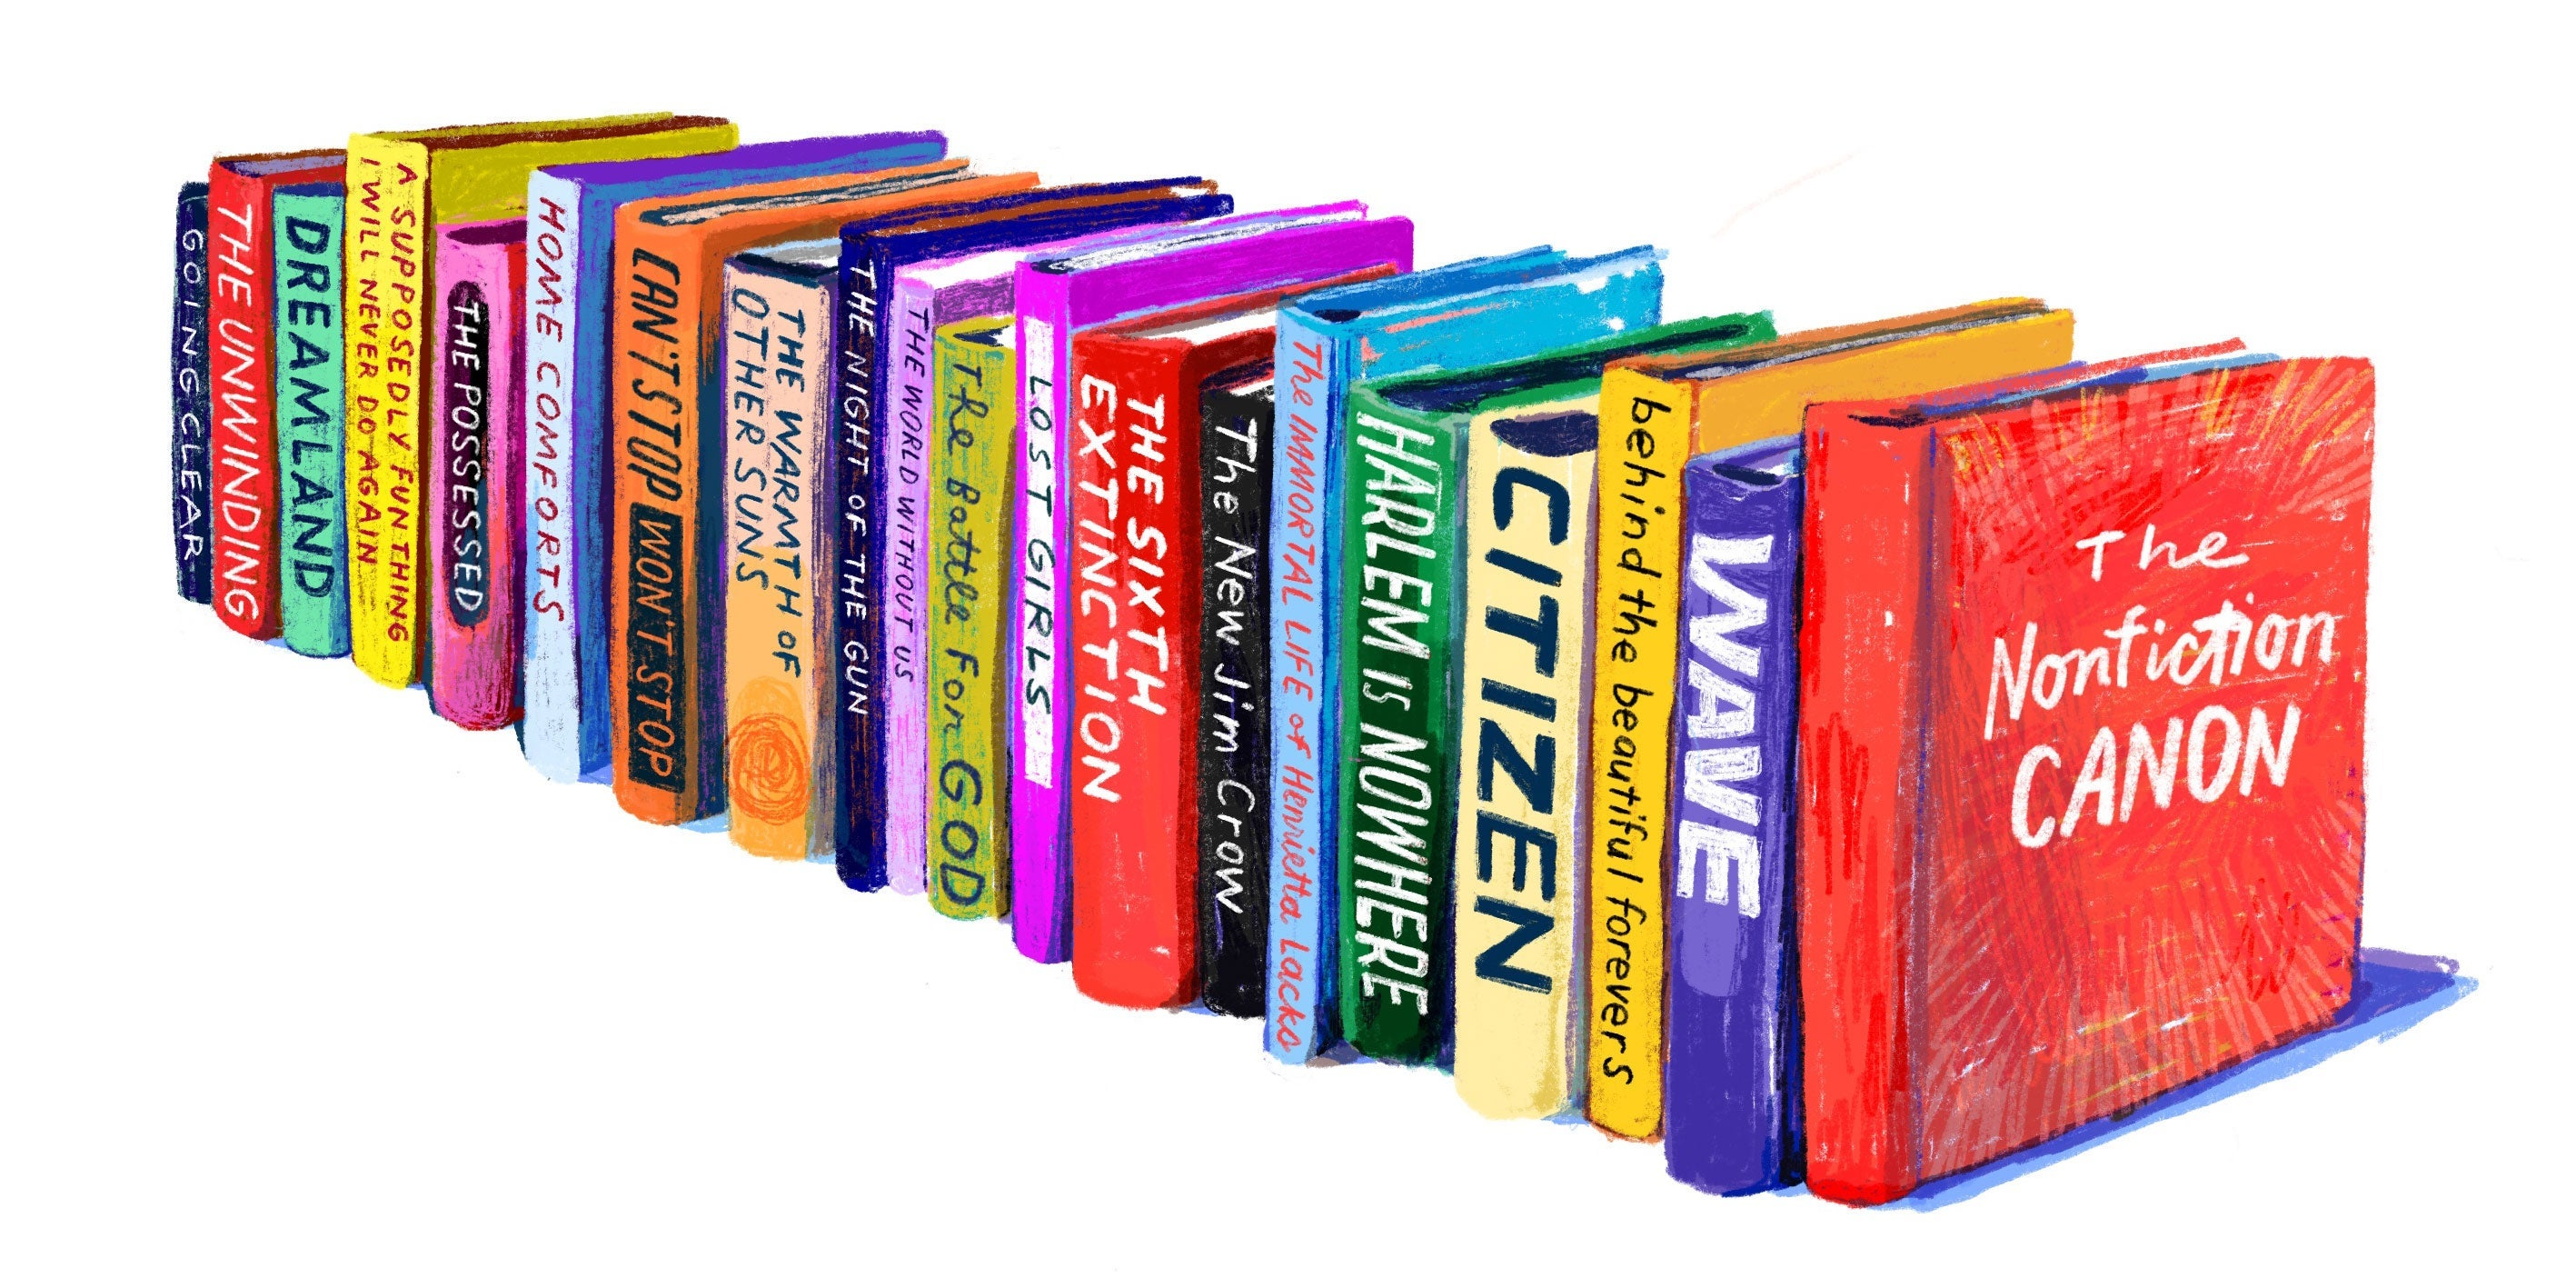 A row of brightly colored nonfiction books.